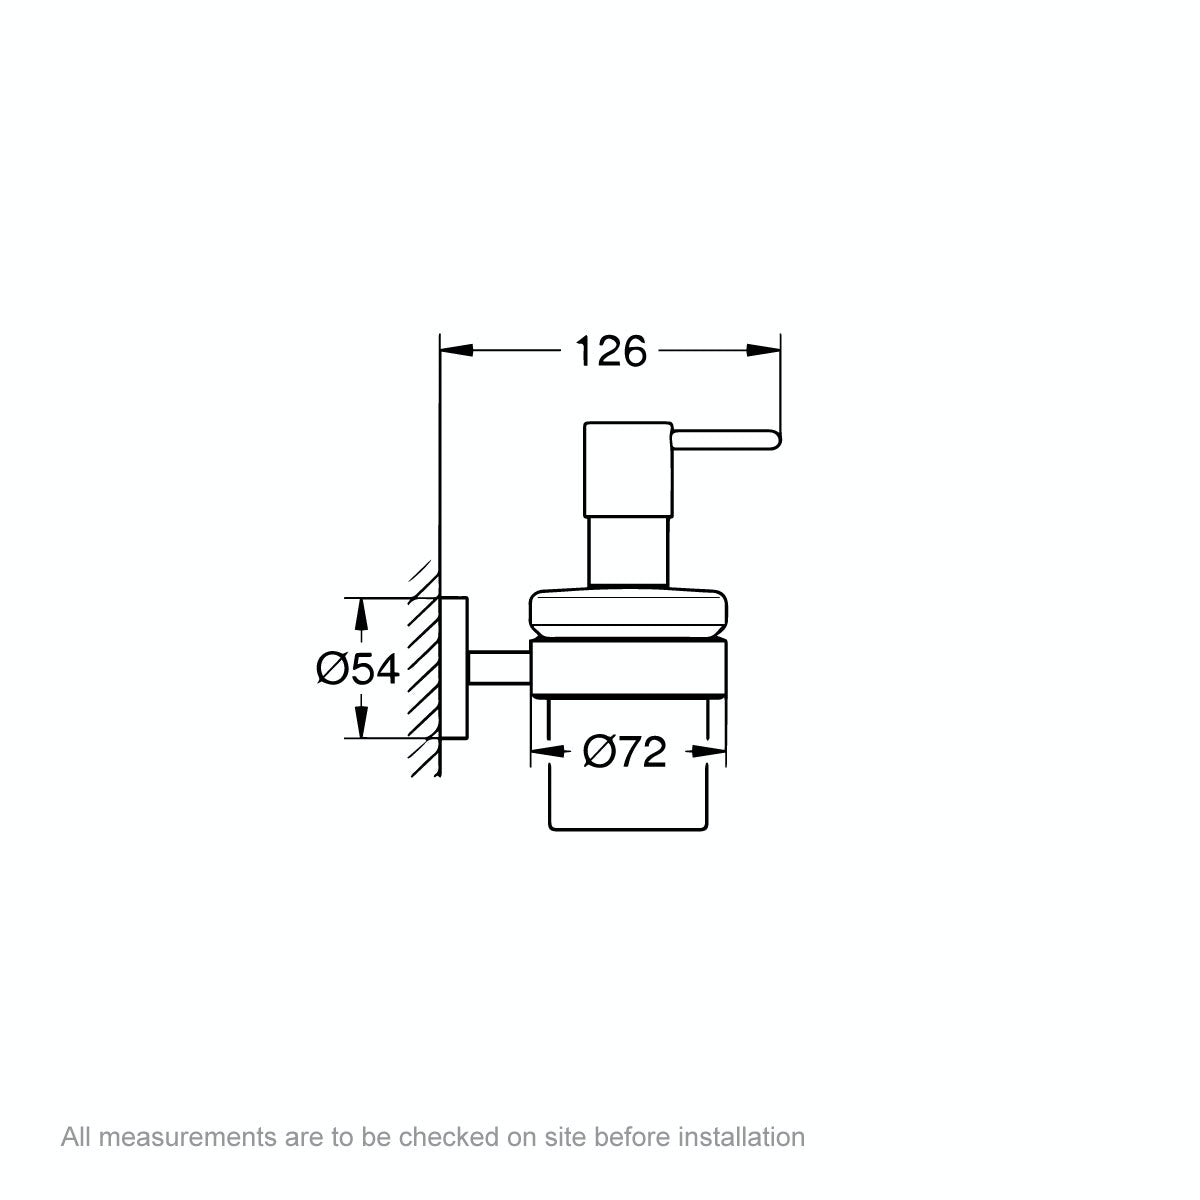 Dimensions for Grohe Essentials soap dispenser and holder